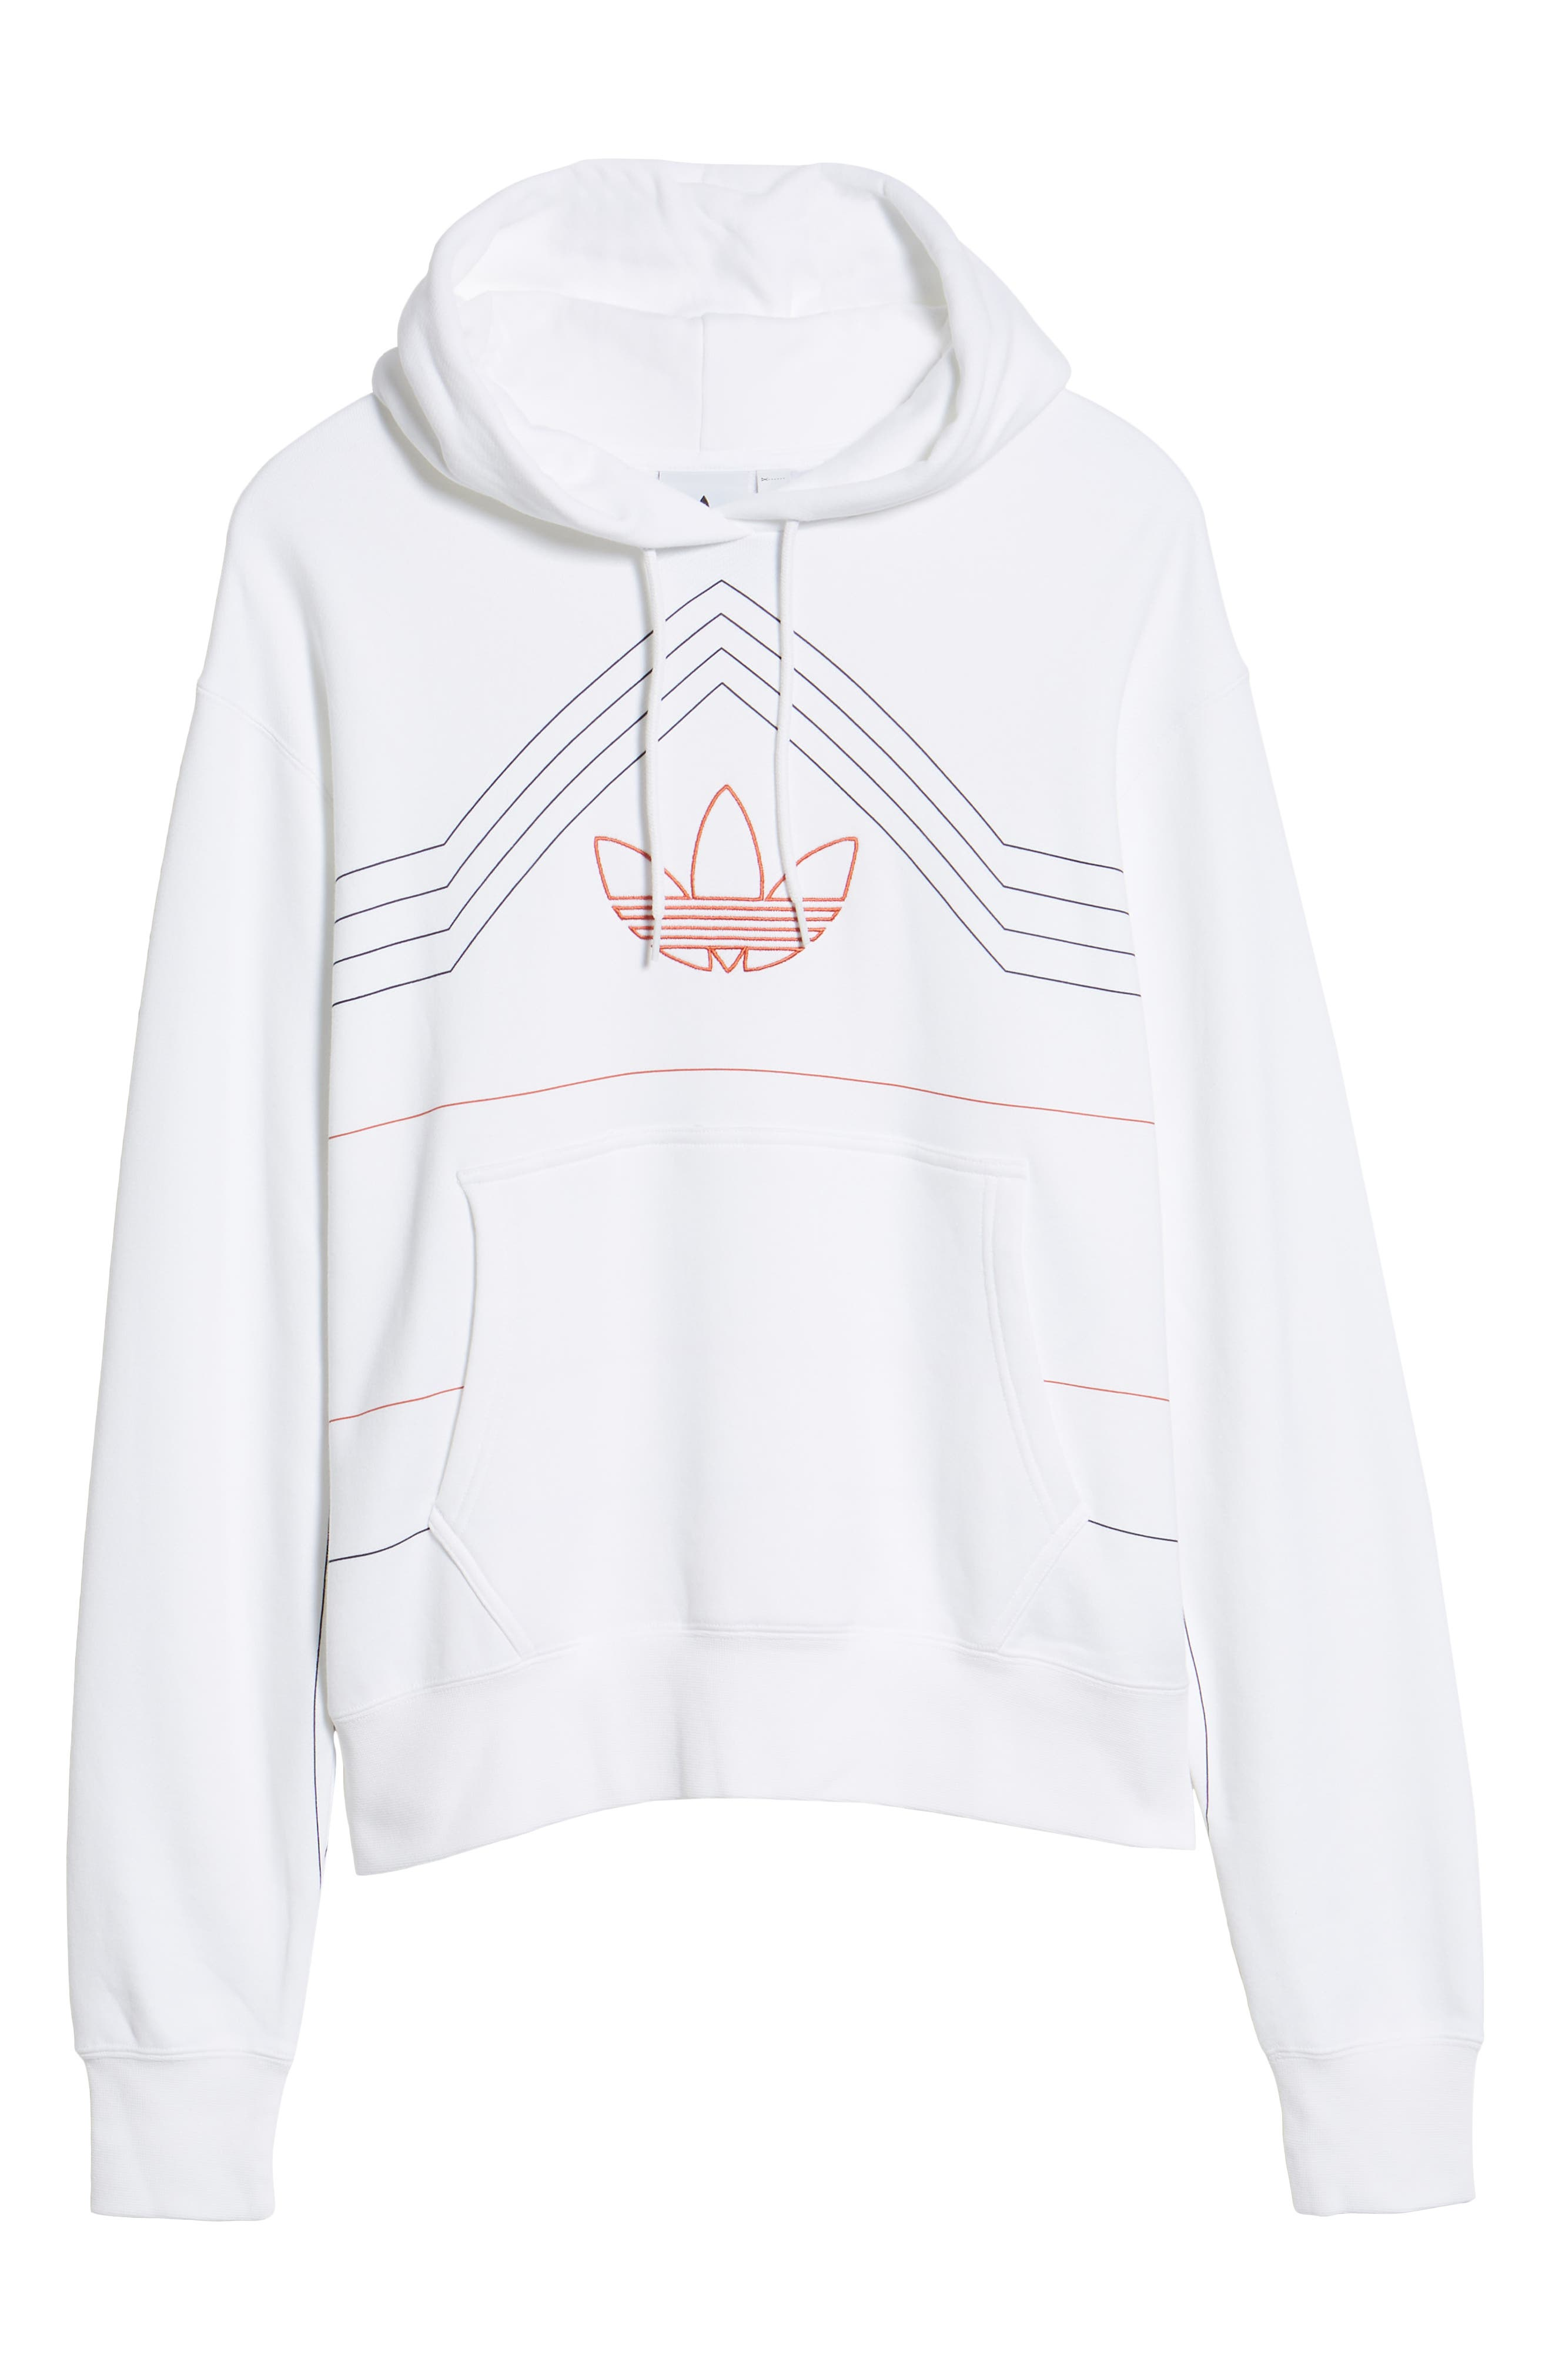 ADIDAS ORIGINALS, Ewing Hooded Sweatshirt, Alternate thumbnail 7, color, WHITE/ RAW AMBER